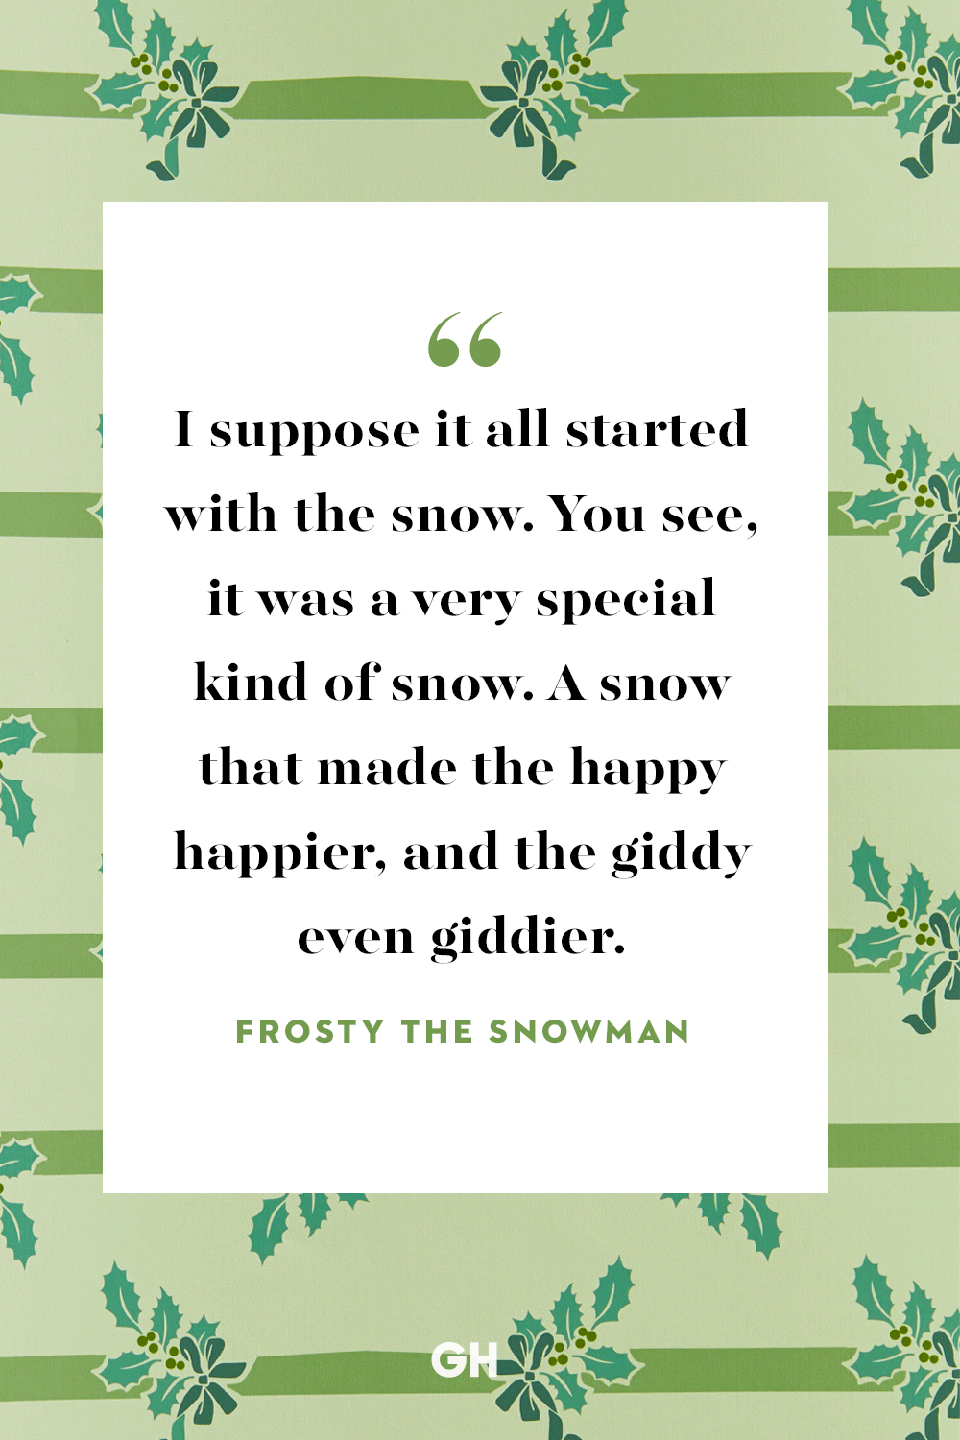 <p>I suppose it all started with the snow. You see, it was a very special kind of snow. A snow that made the happy happier, and the giddy even giddier. </p>